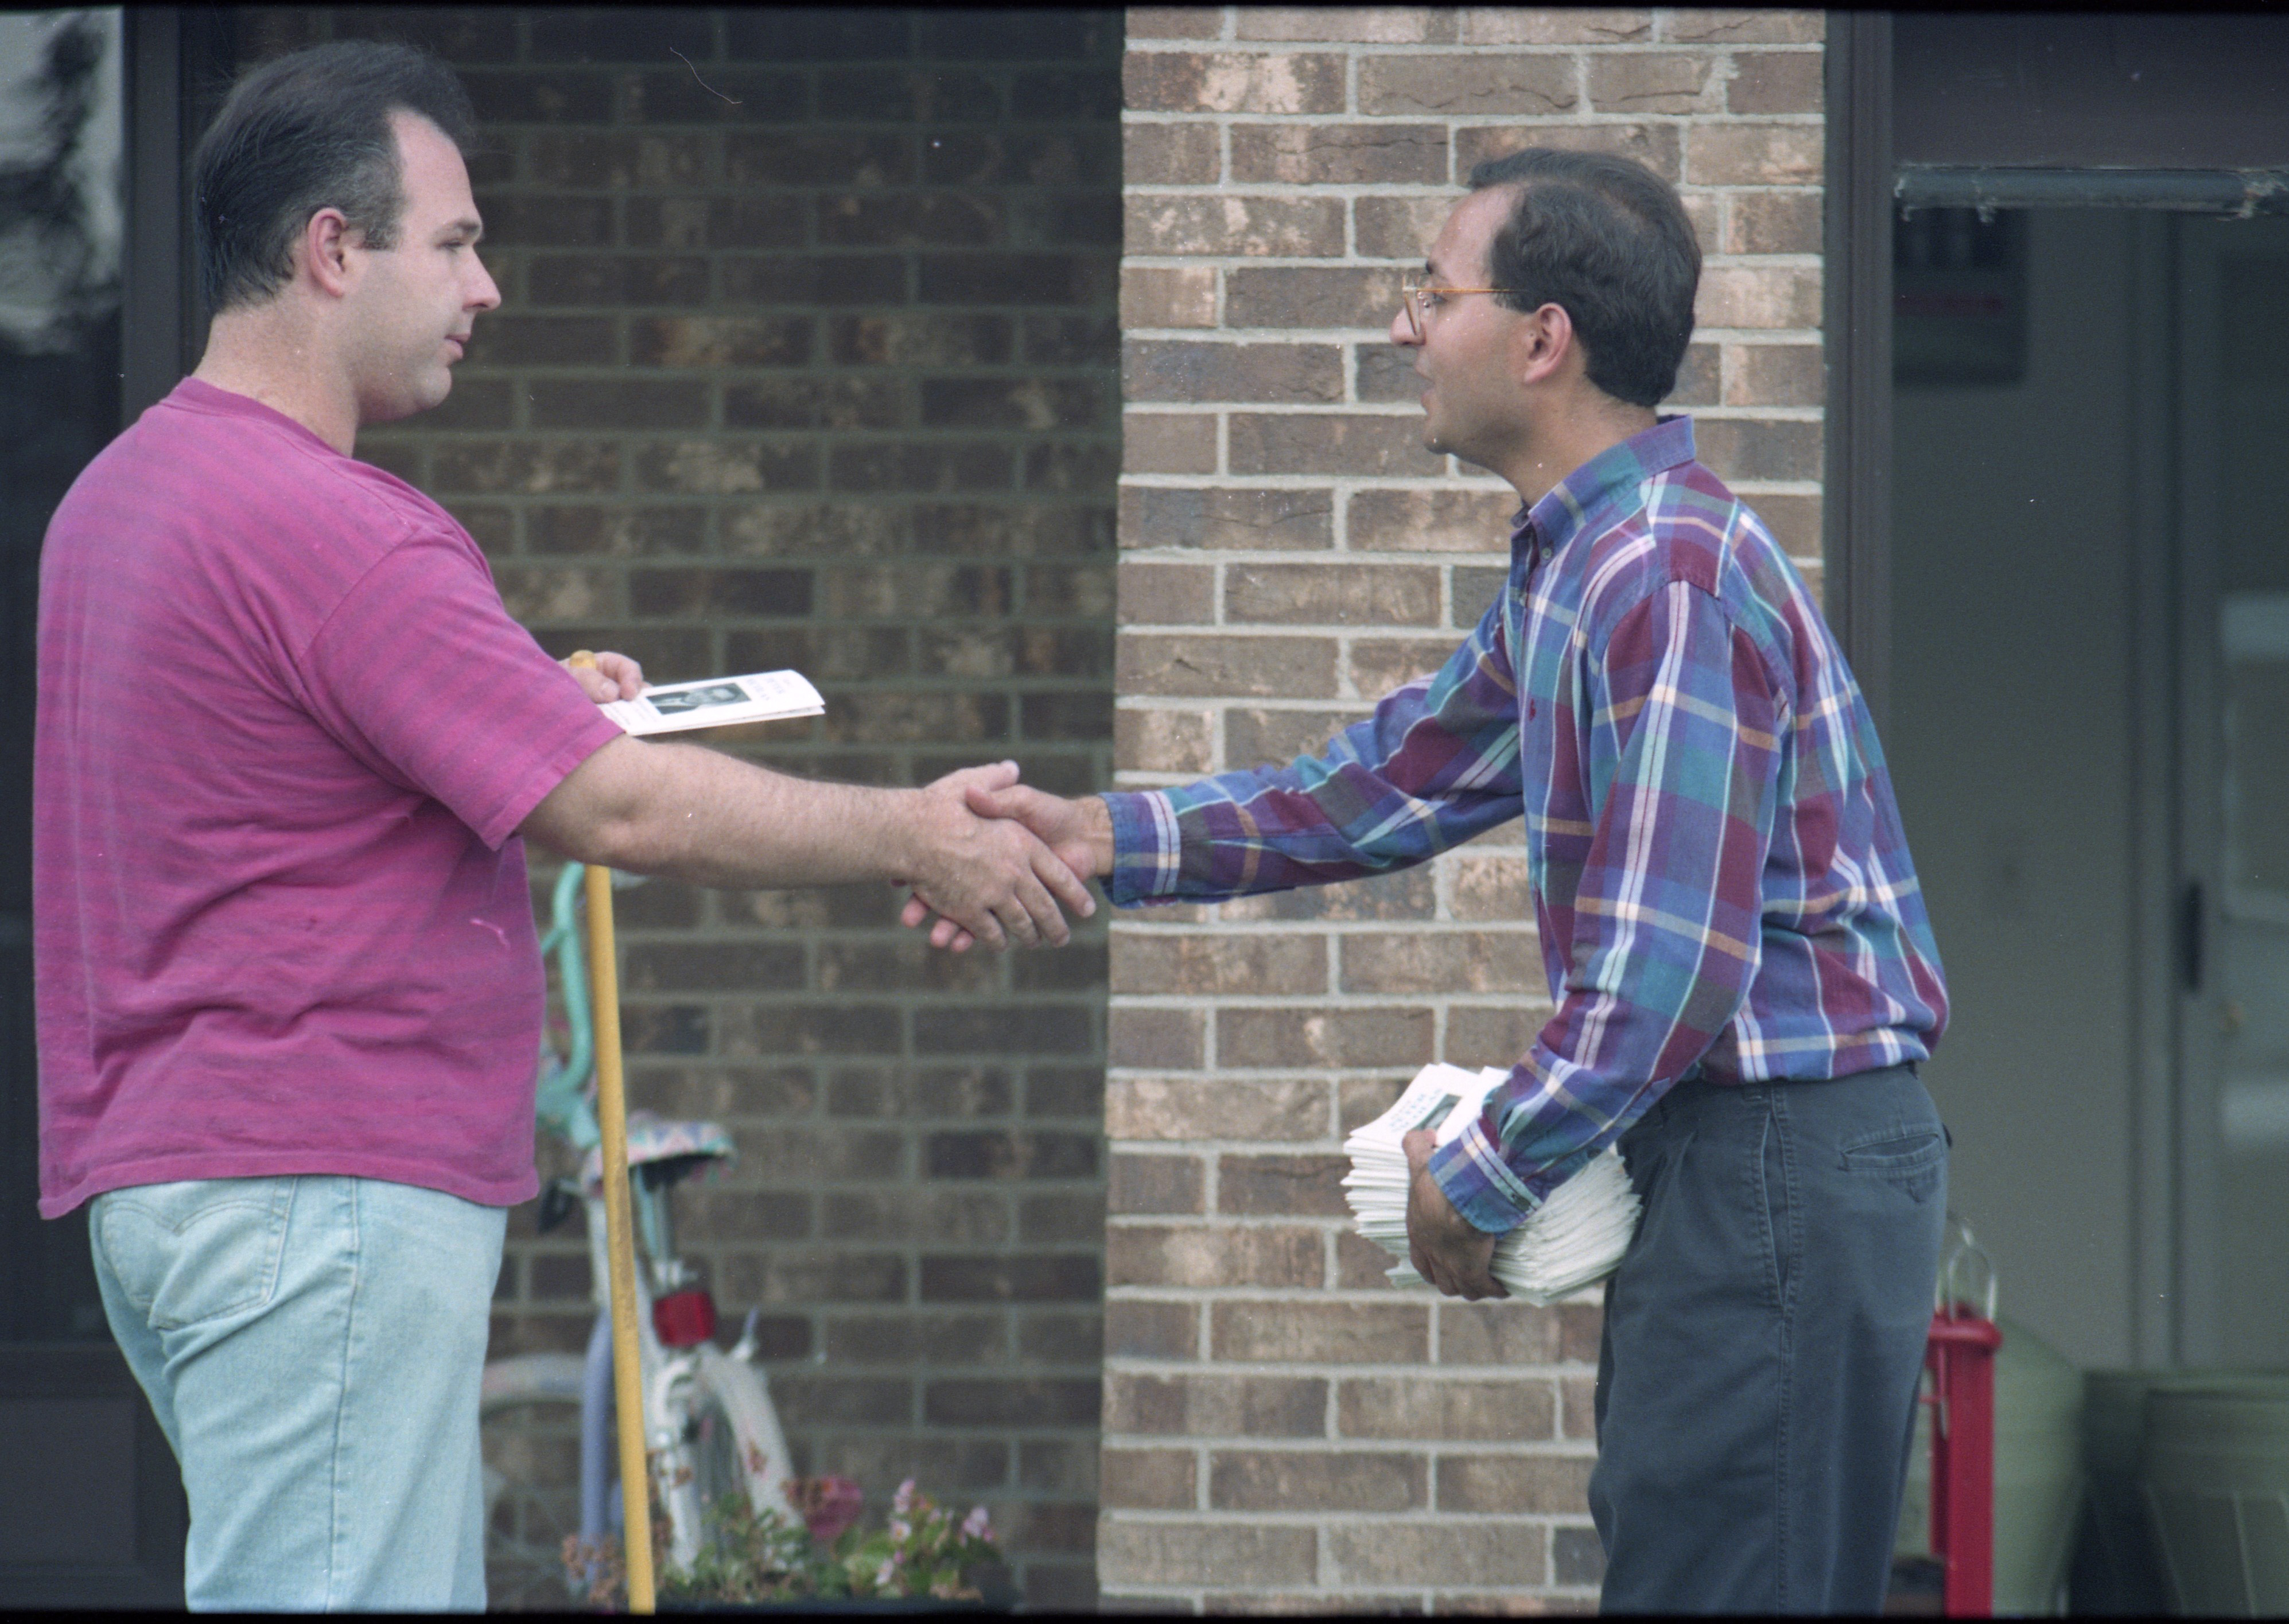 Peter Nicolas, Candidate For Michigan House of Representatives, July